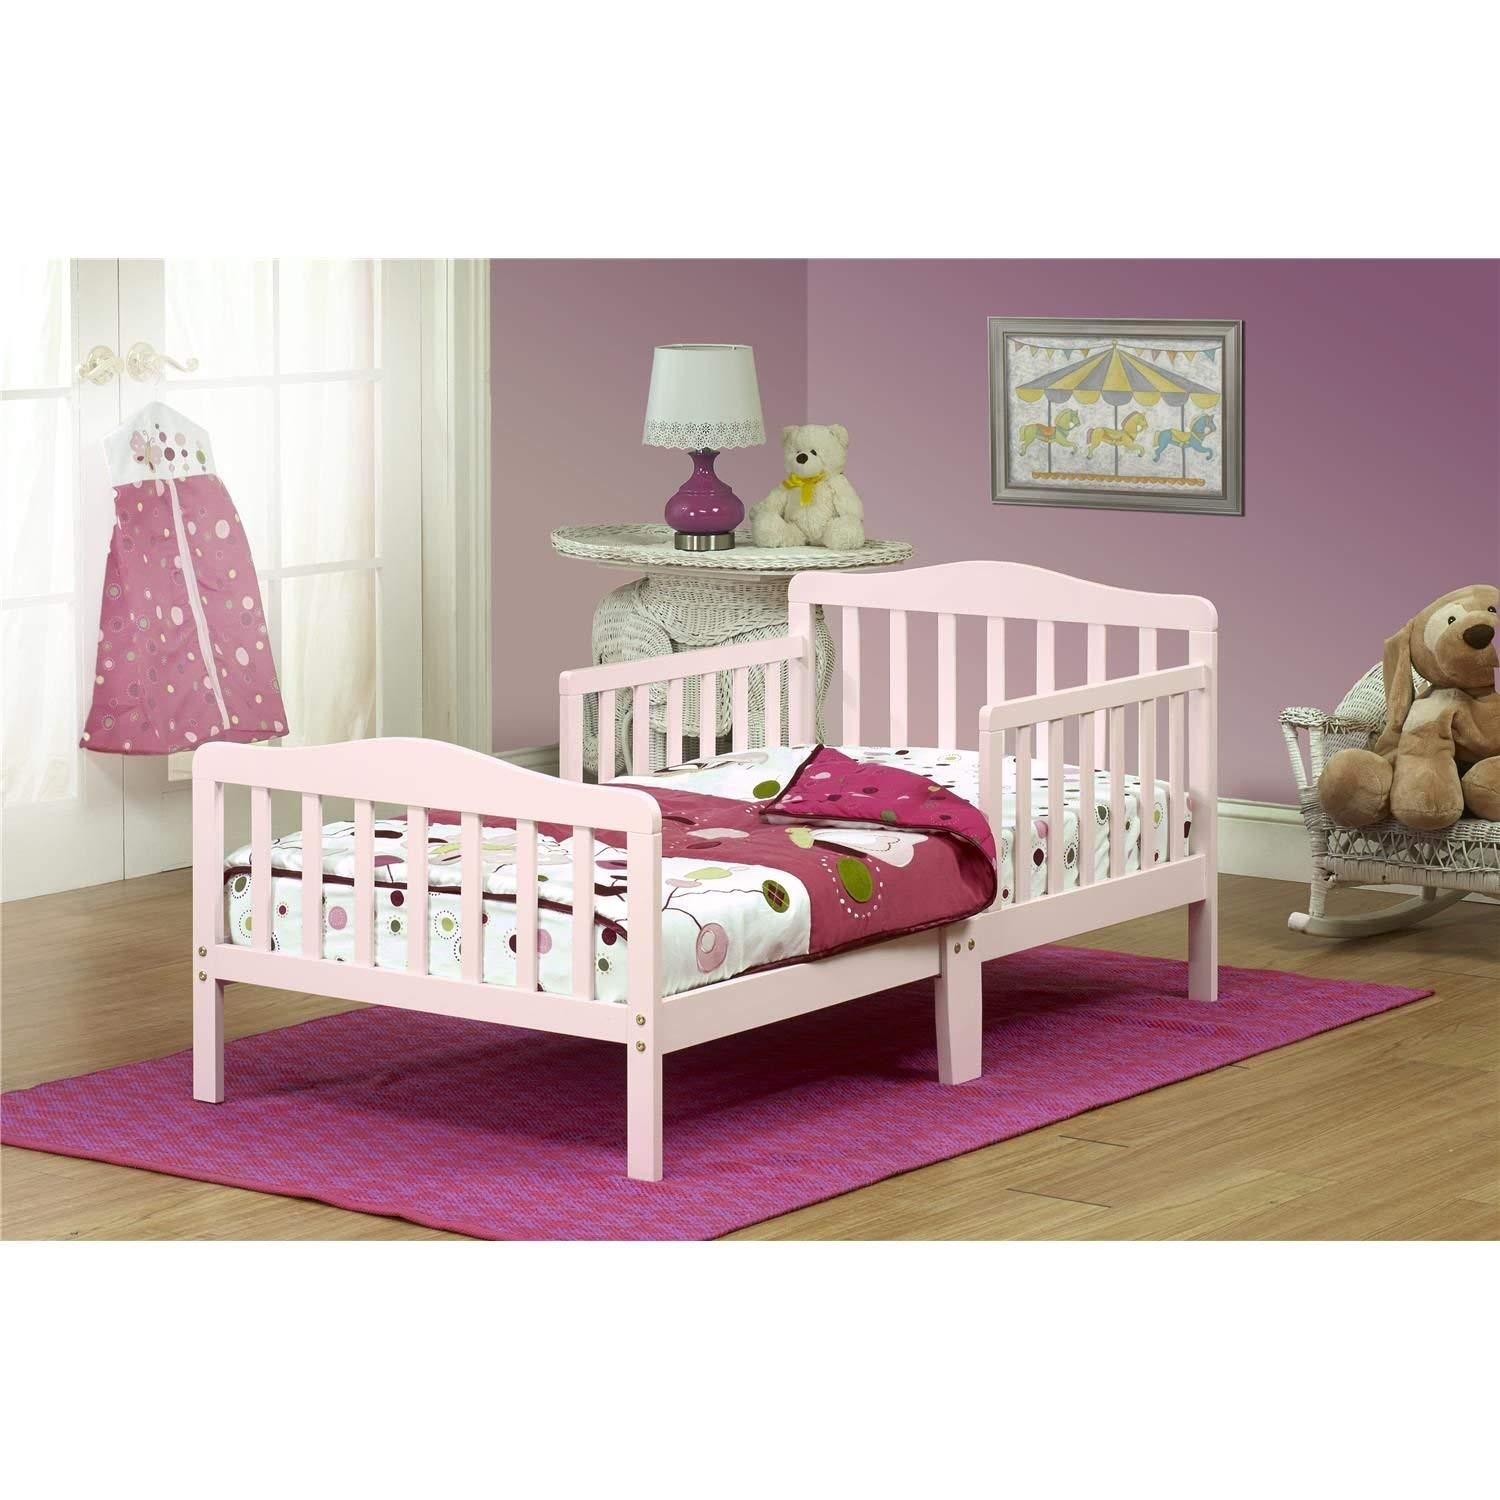 Orbelle 3-6T Toddler Bed, Pink by Orbelle